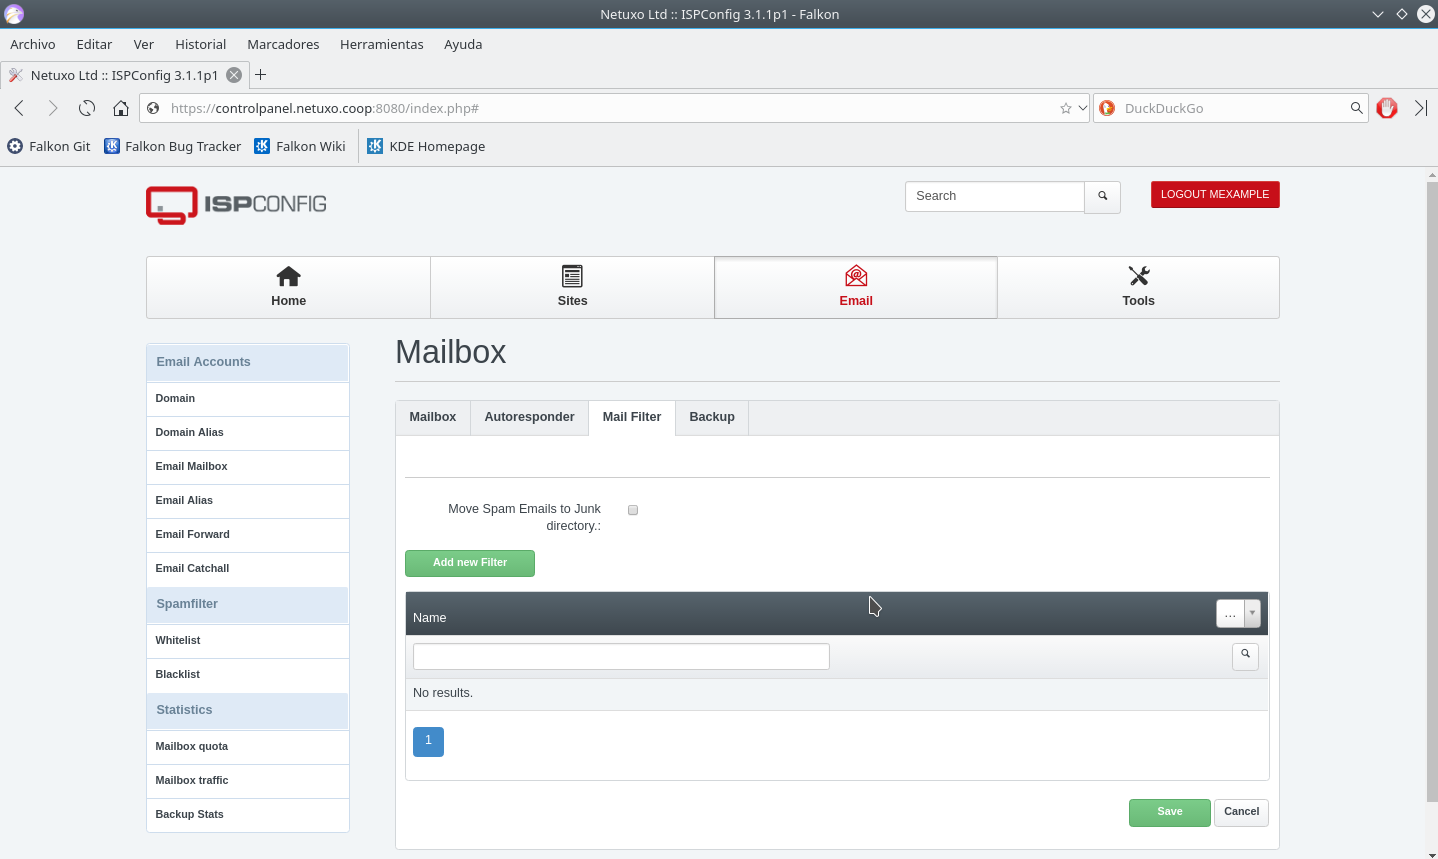 Mail Filter overview